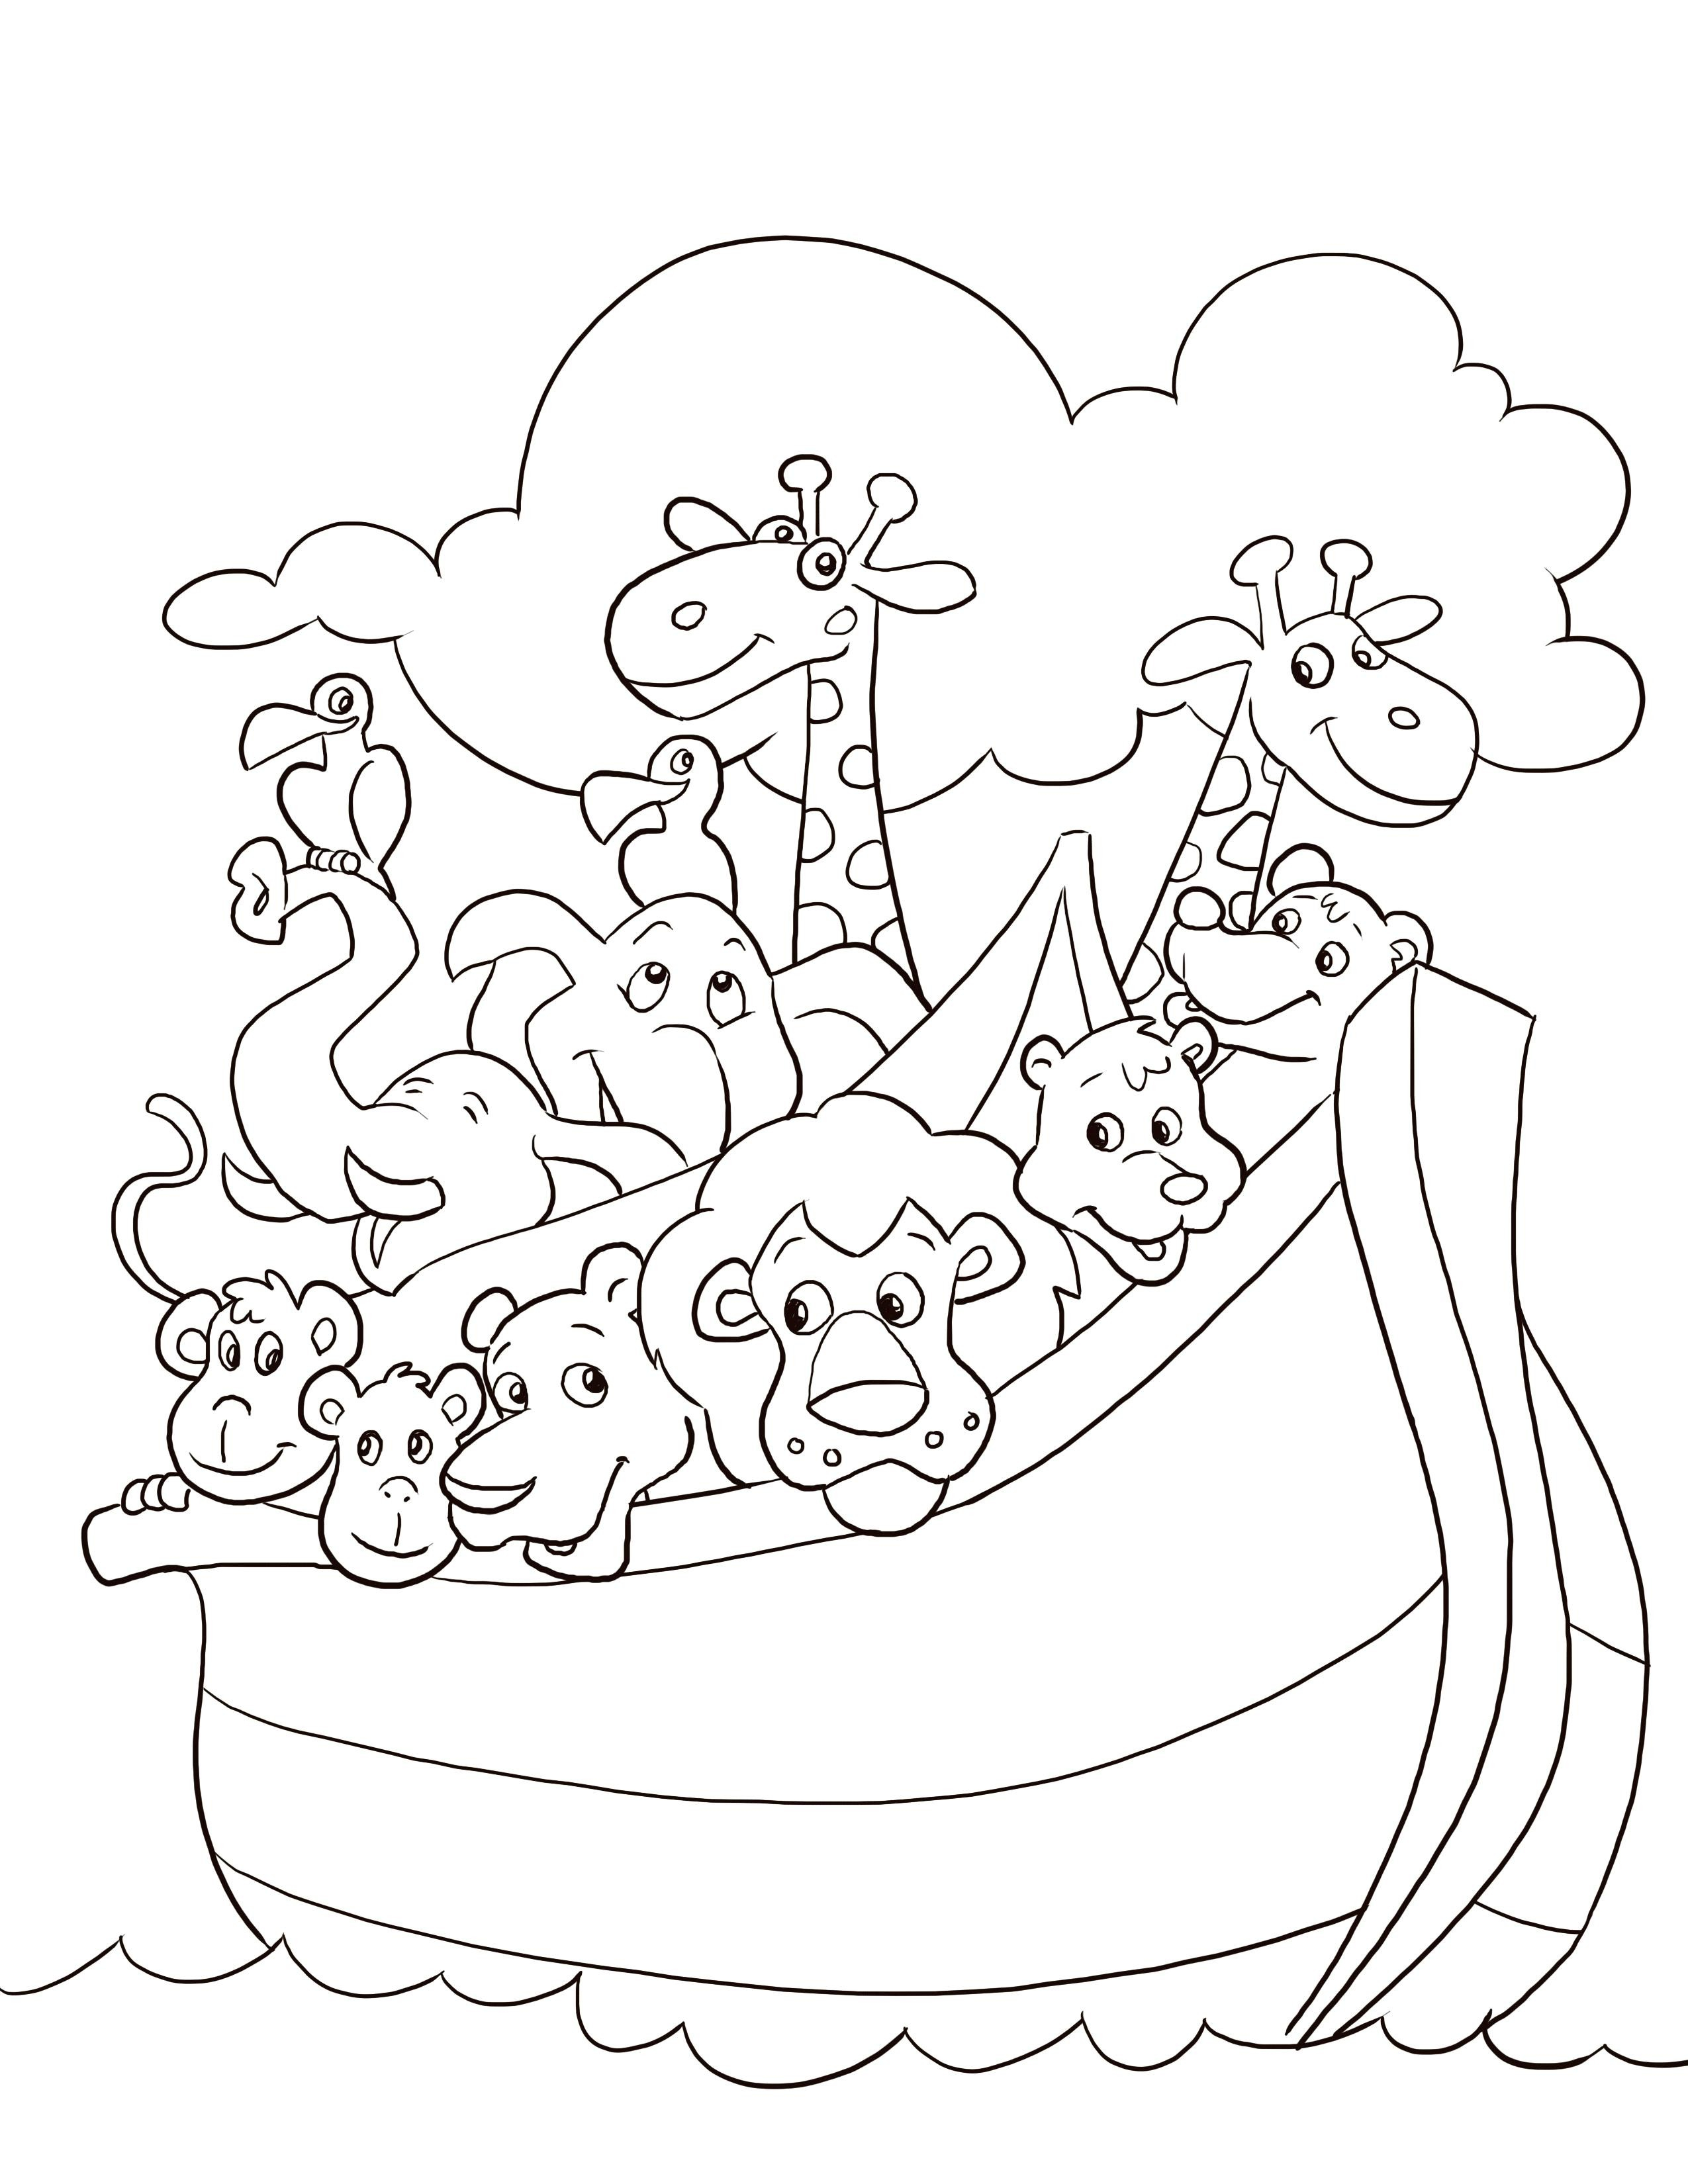 Bible Story Coloring Pages Bible Story Coloring Pages Printable ...